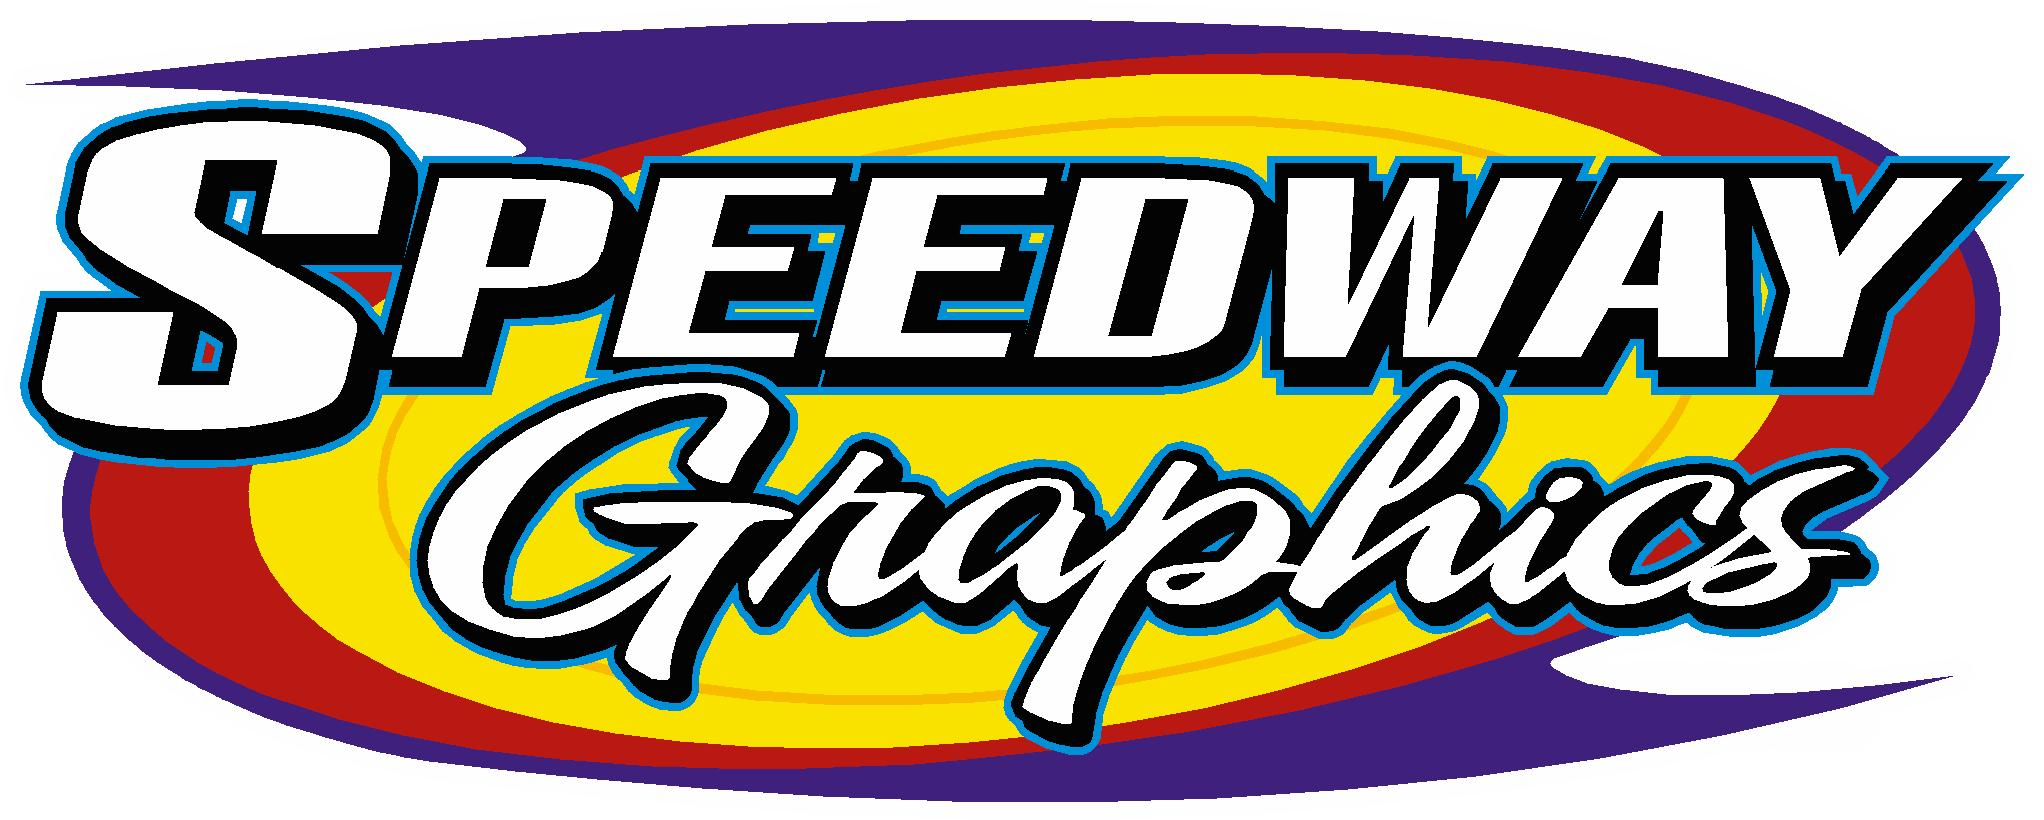 racecar lettering vinyl lettering racing graphics racecars graphics racecar decals racing decals welcome to speedway graphics